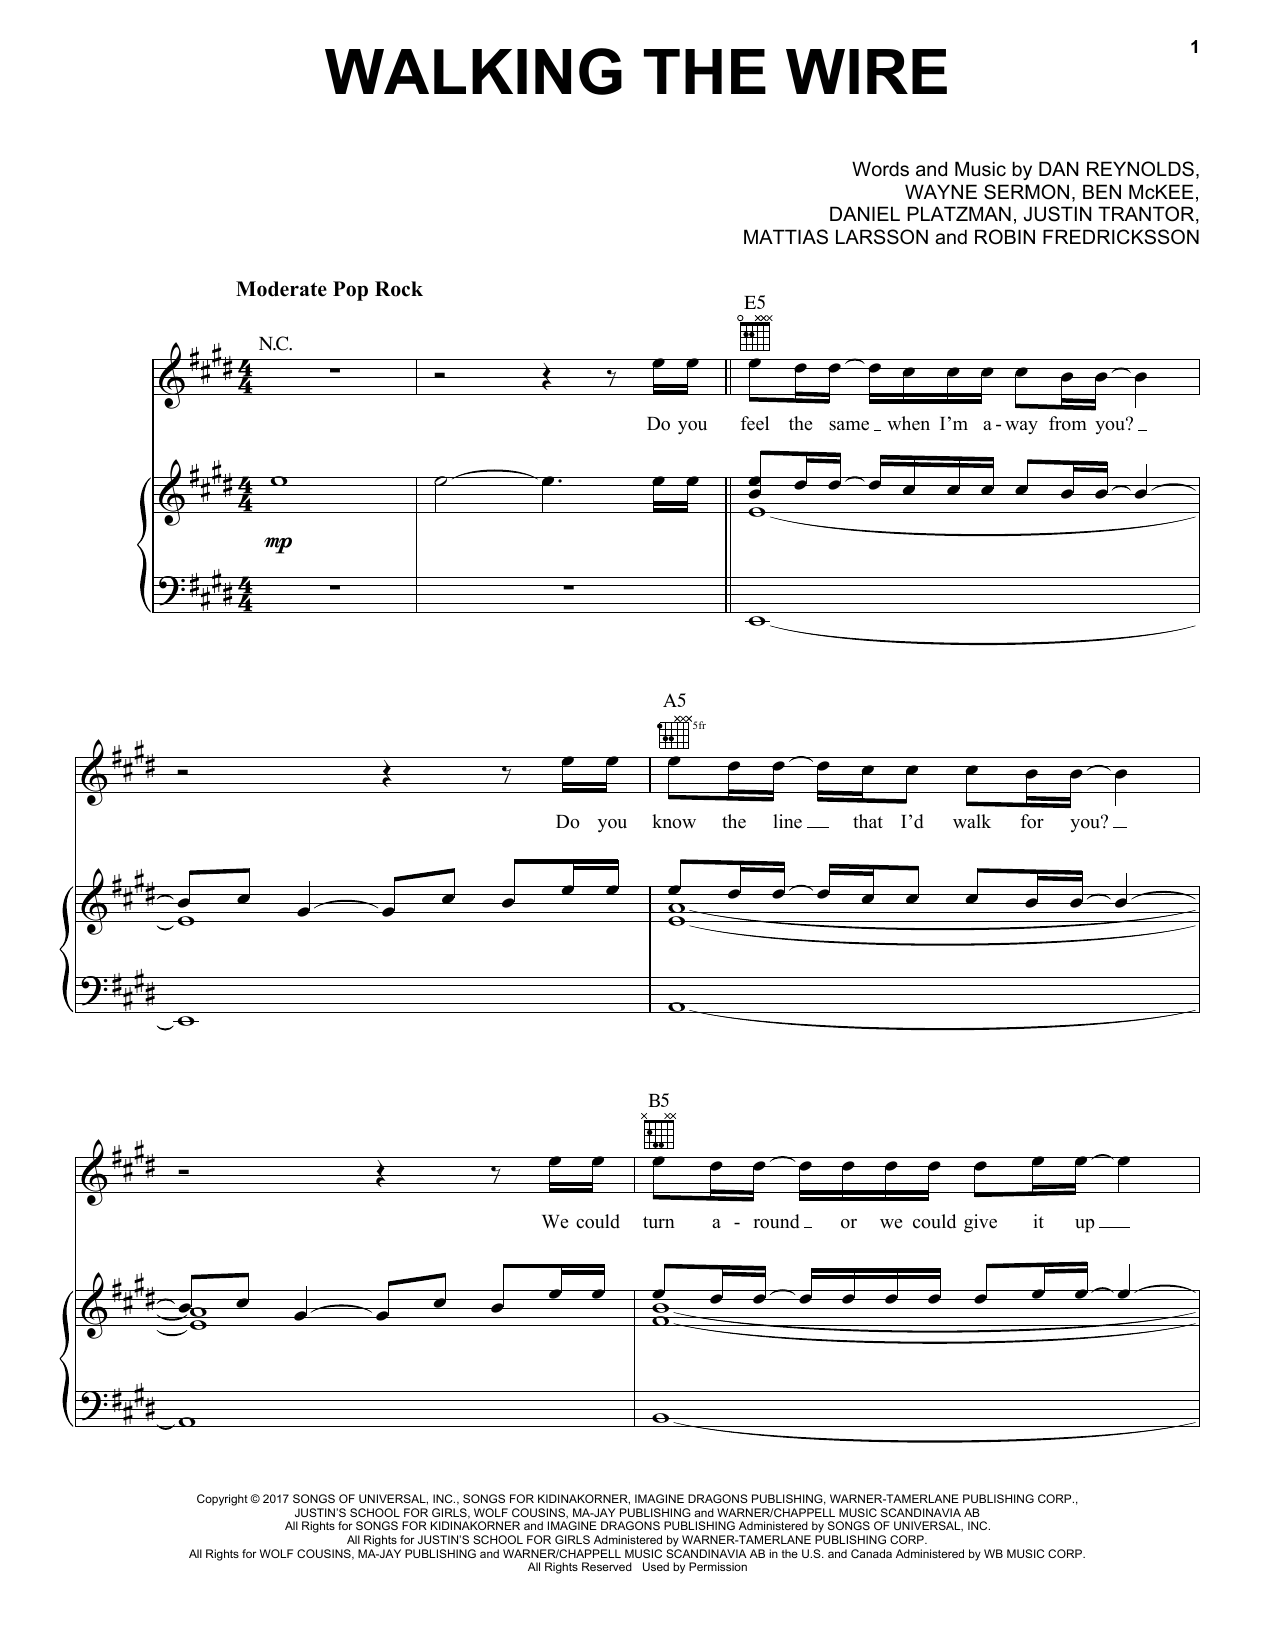 Imagine Dragons Walking The Wire sheet music notes and chords. Download Printable PDF.